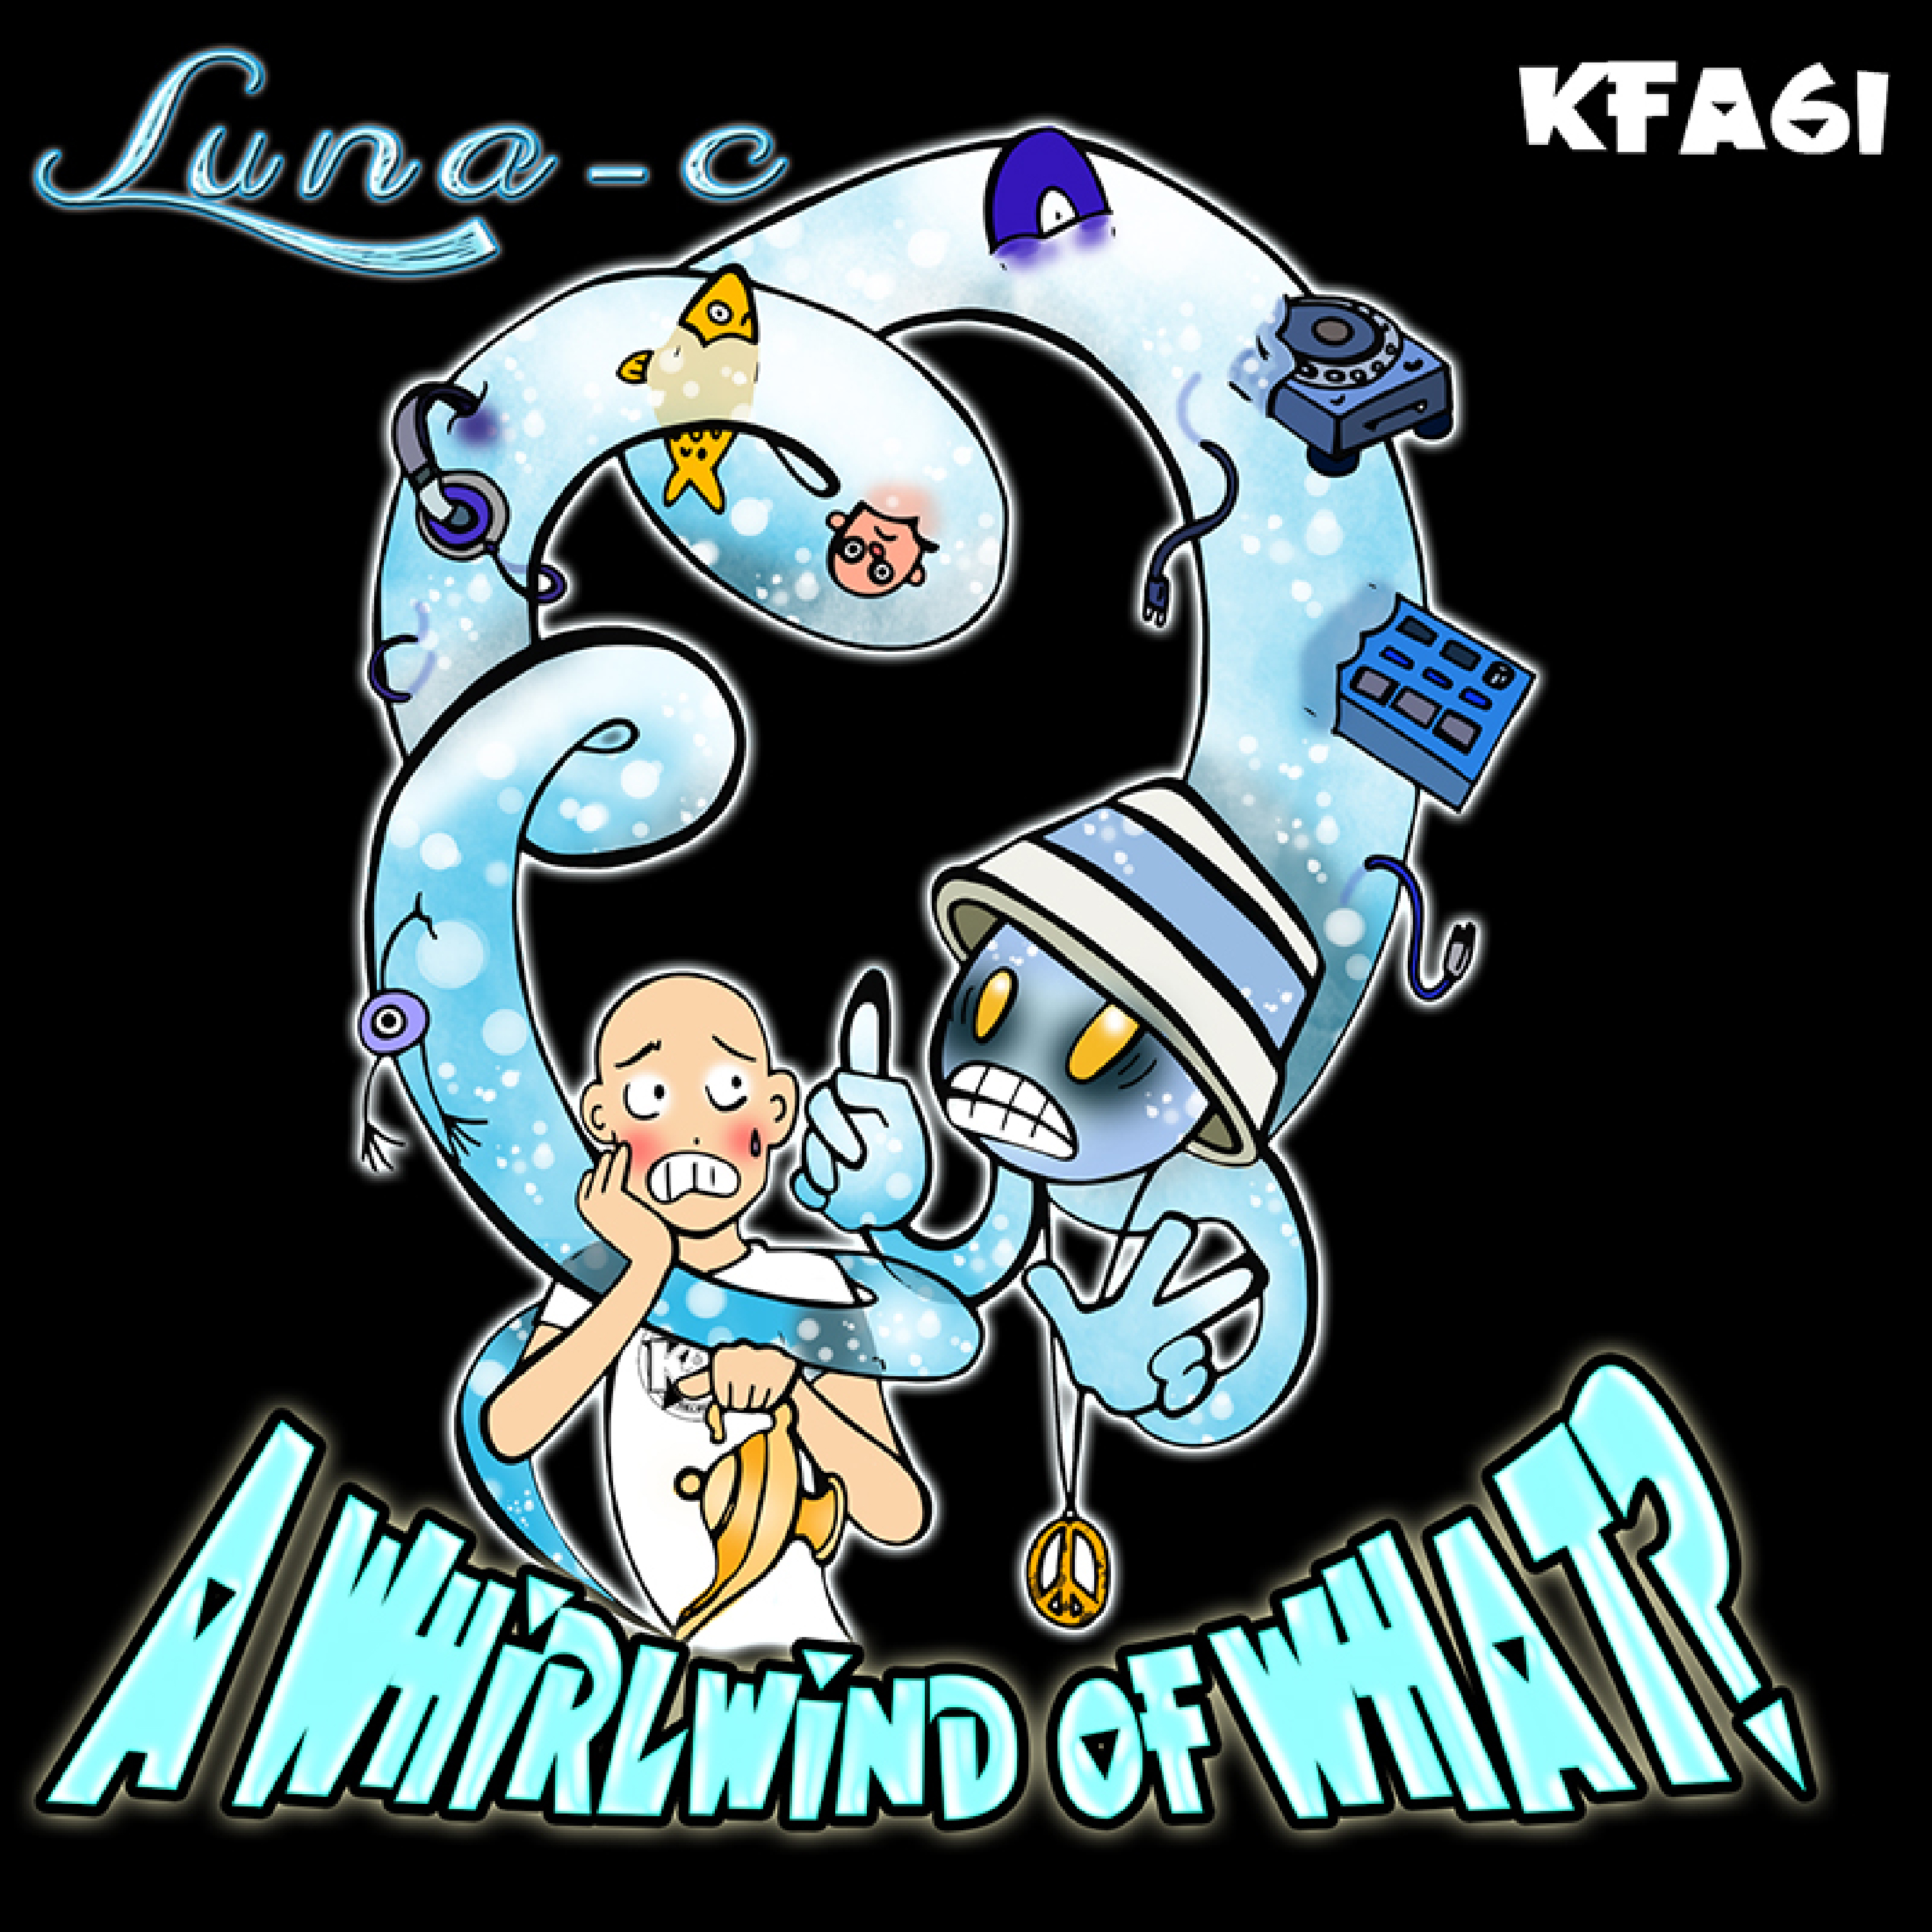 [KFA061] Luna-C - A Whirlwind of WHAT? EP (Digital Only)